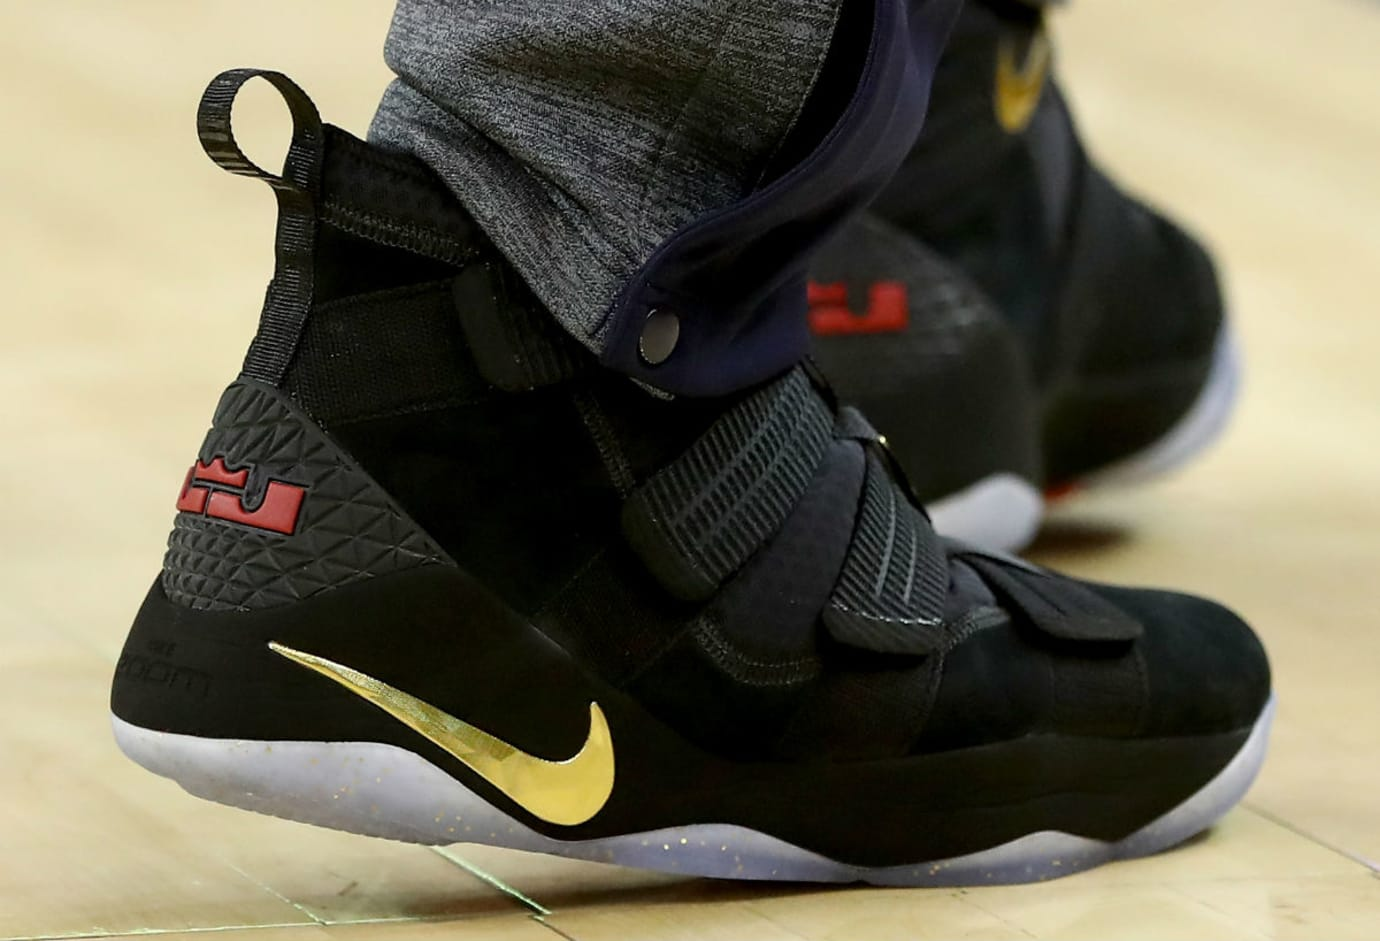 7e5d5857504 LeBron James Debuts Nike LeBron Soldier 11 Black Gold Finals PE in ...